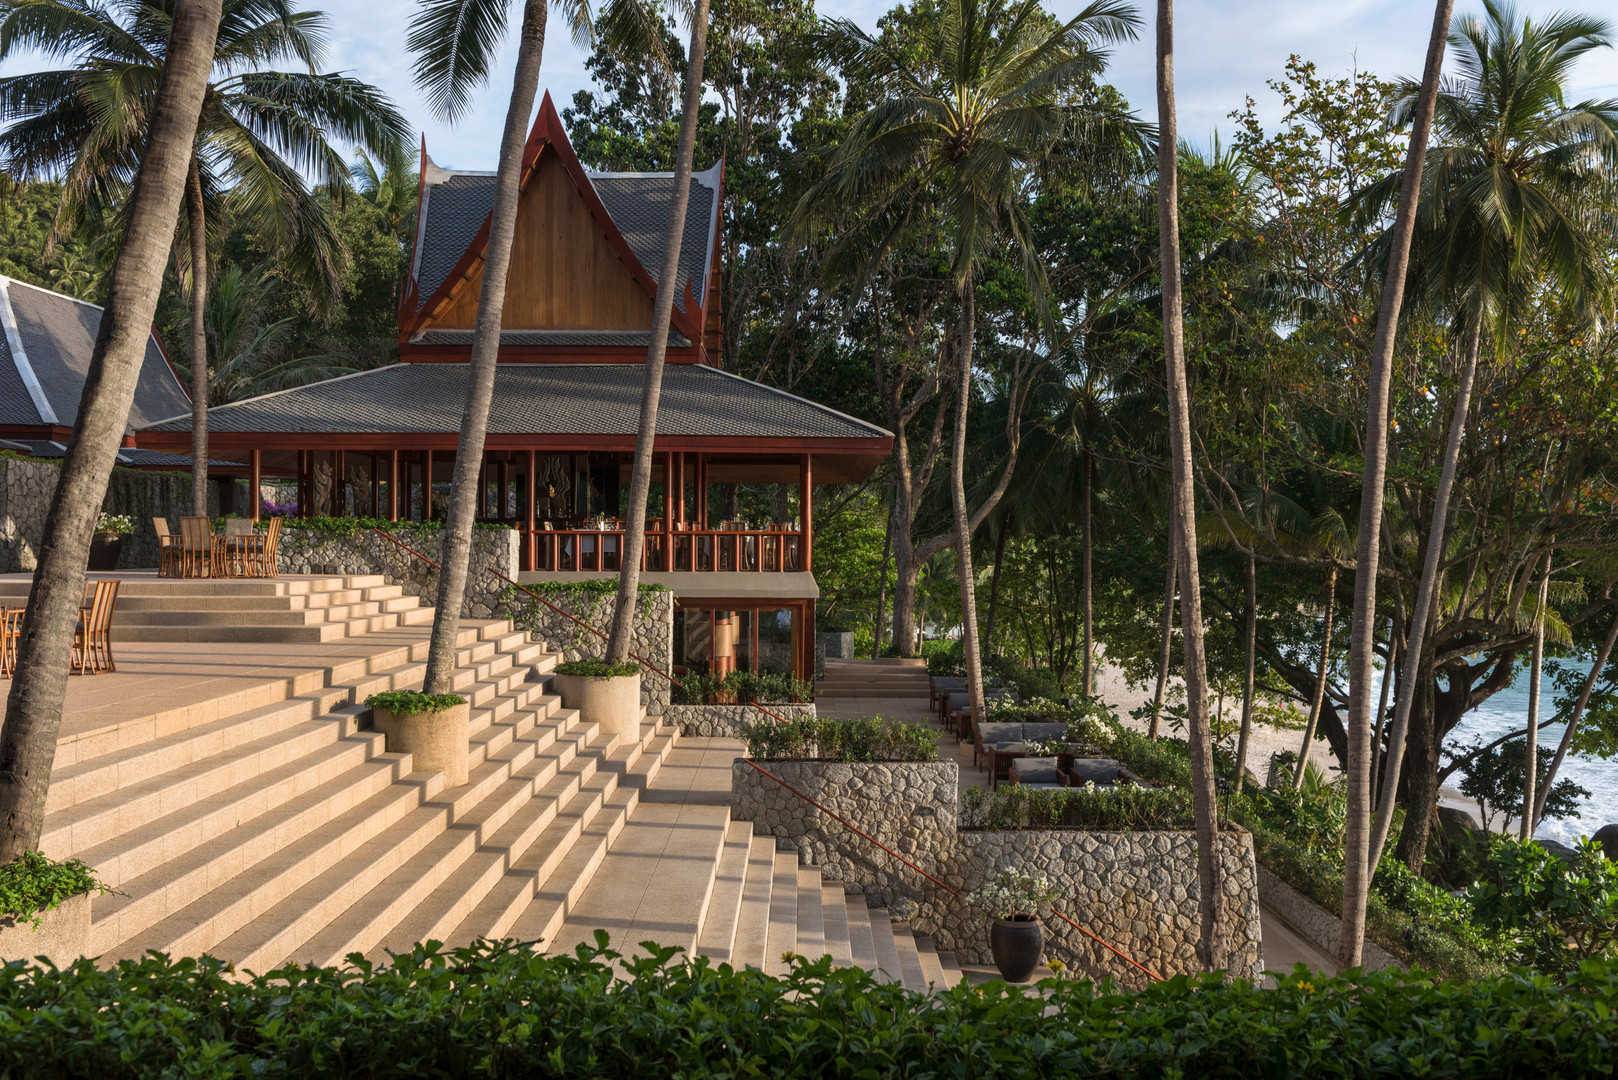 resort_steps_high_res_13019.jpg